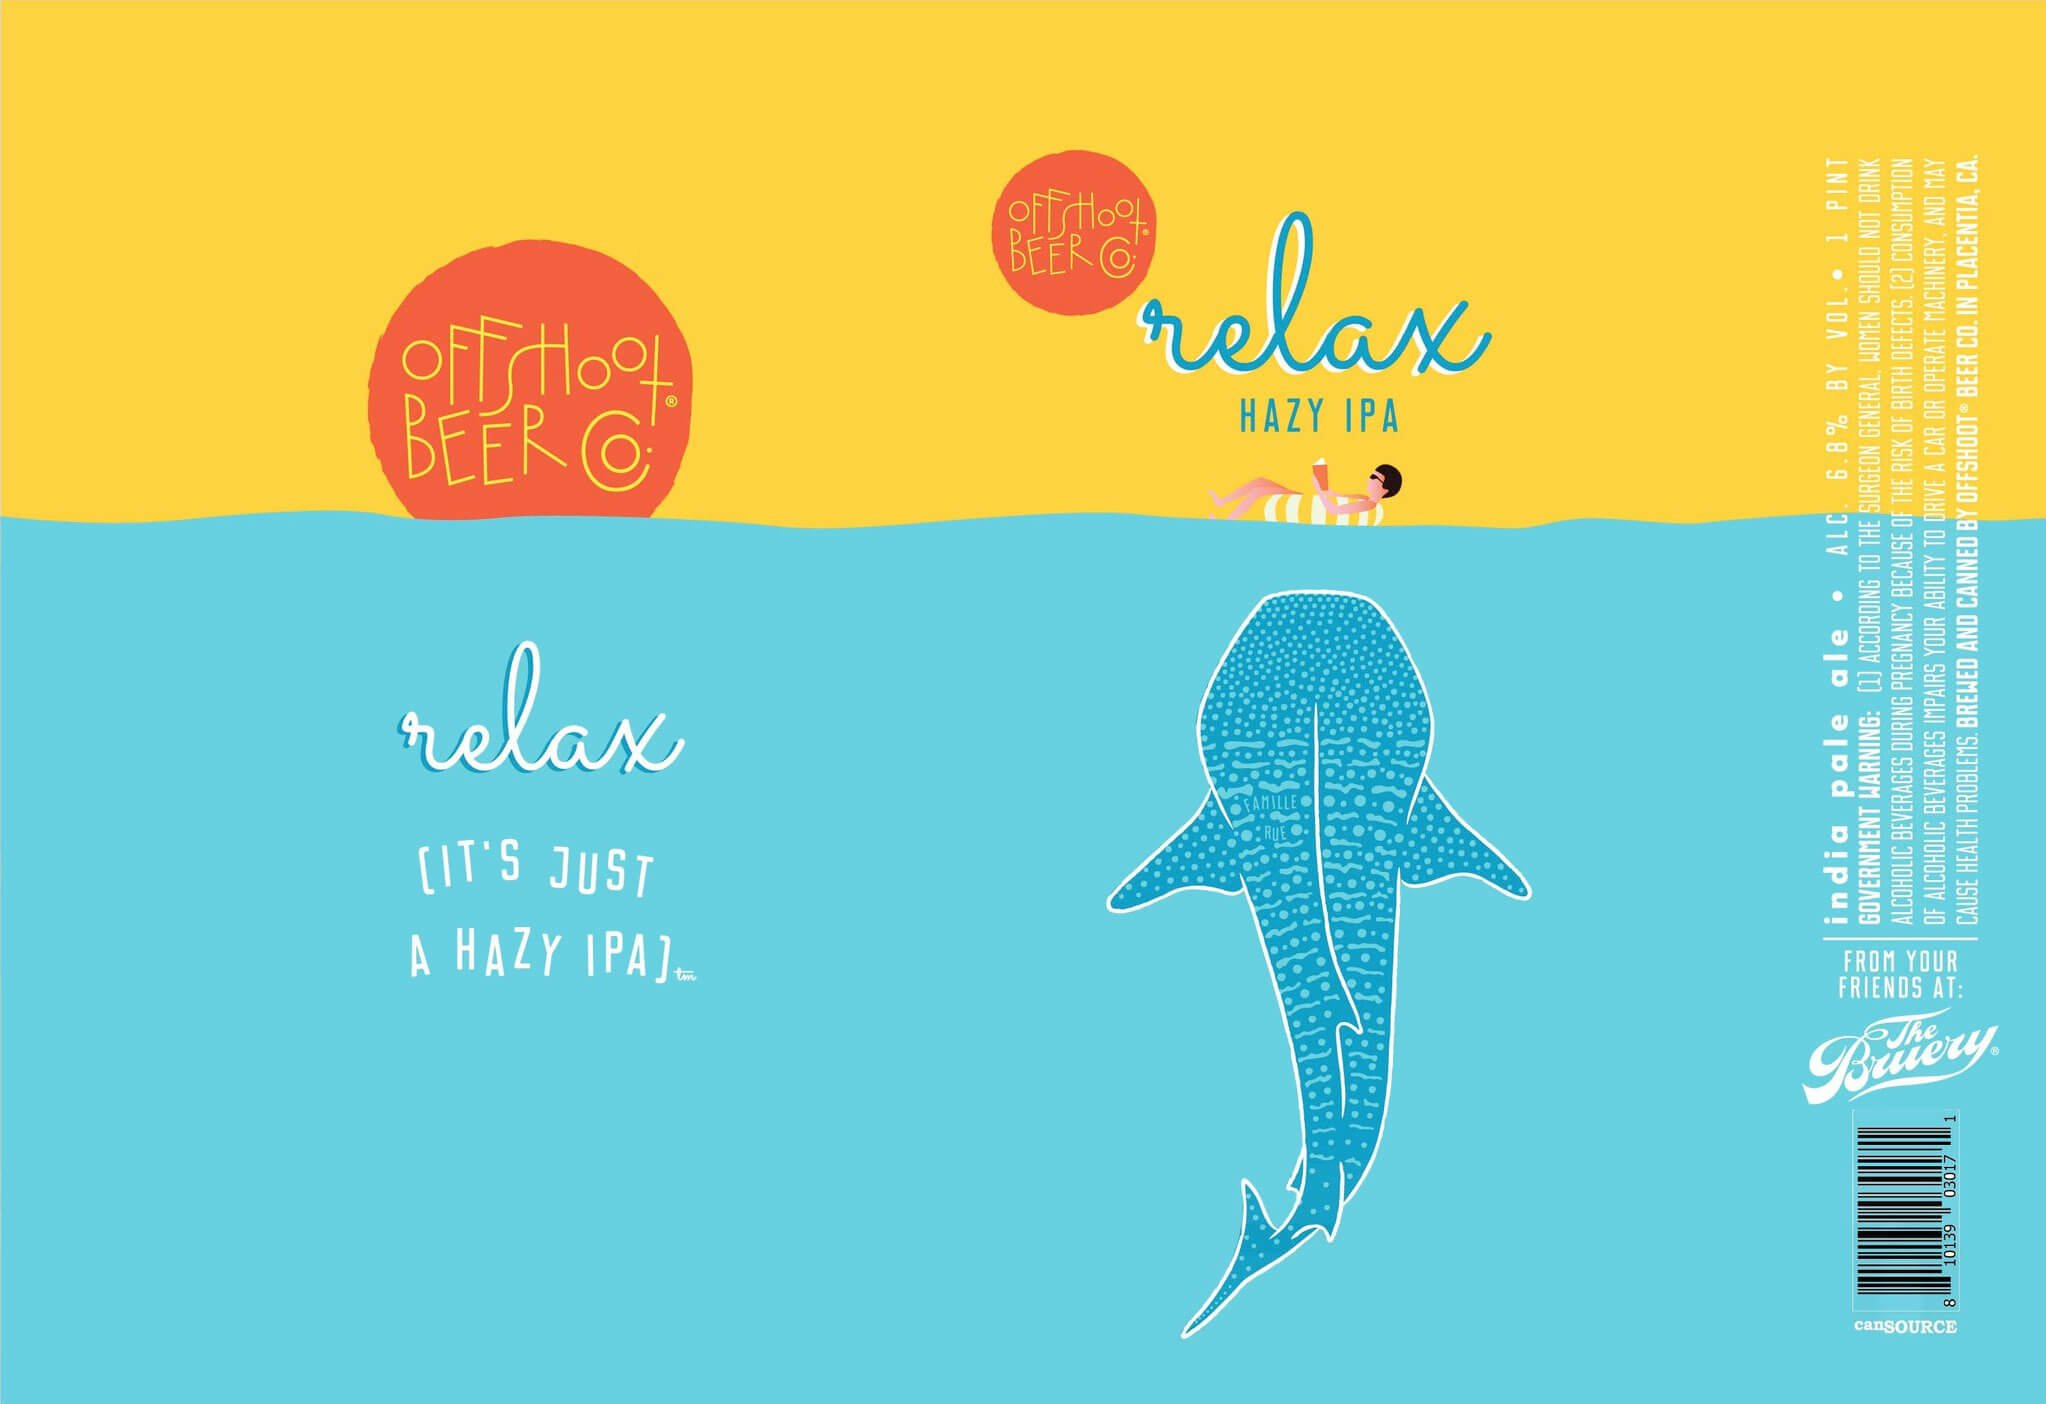 Label art for the Relax [it's just a hazy IPA] by Offshoot Beer Co.